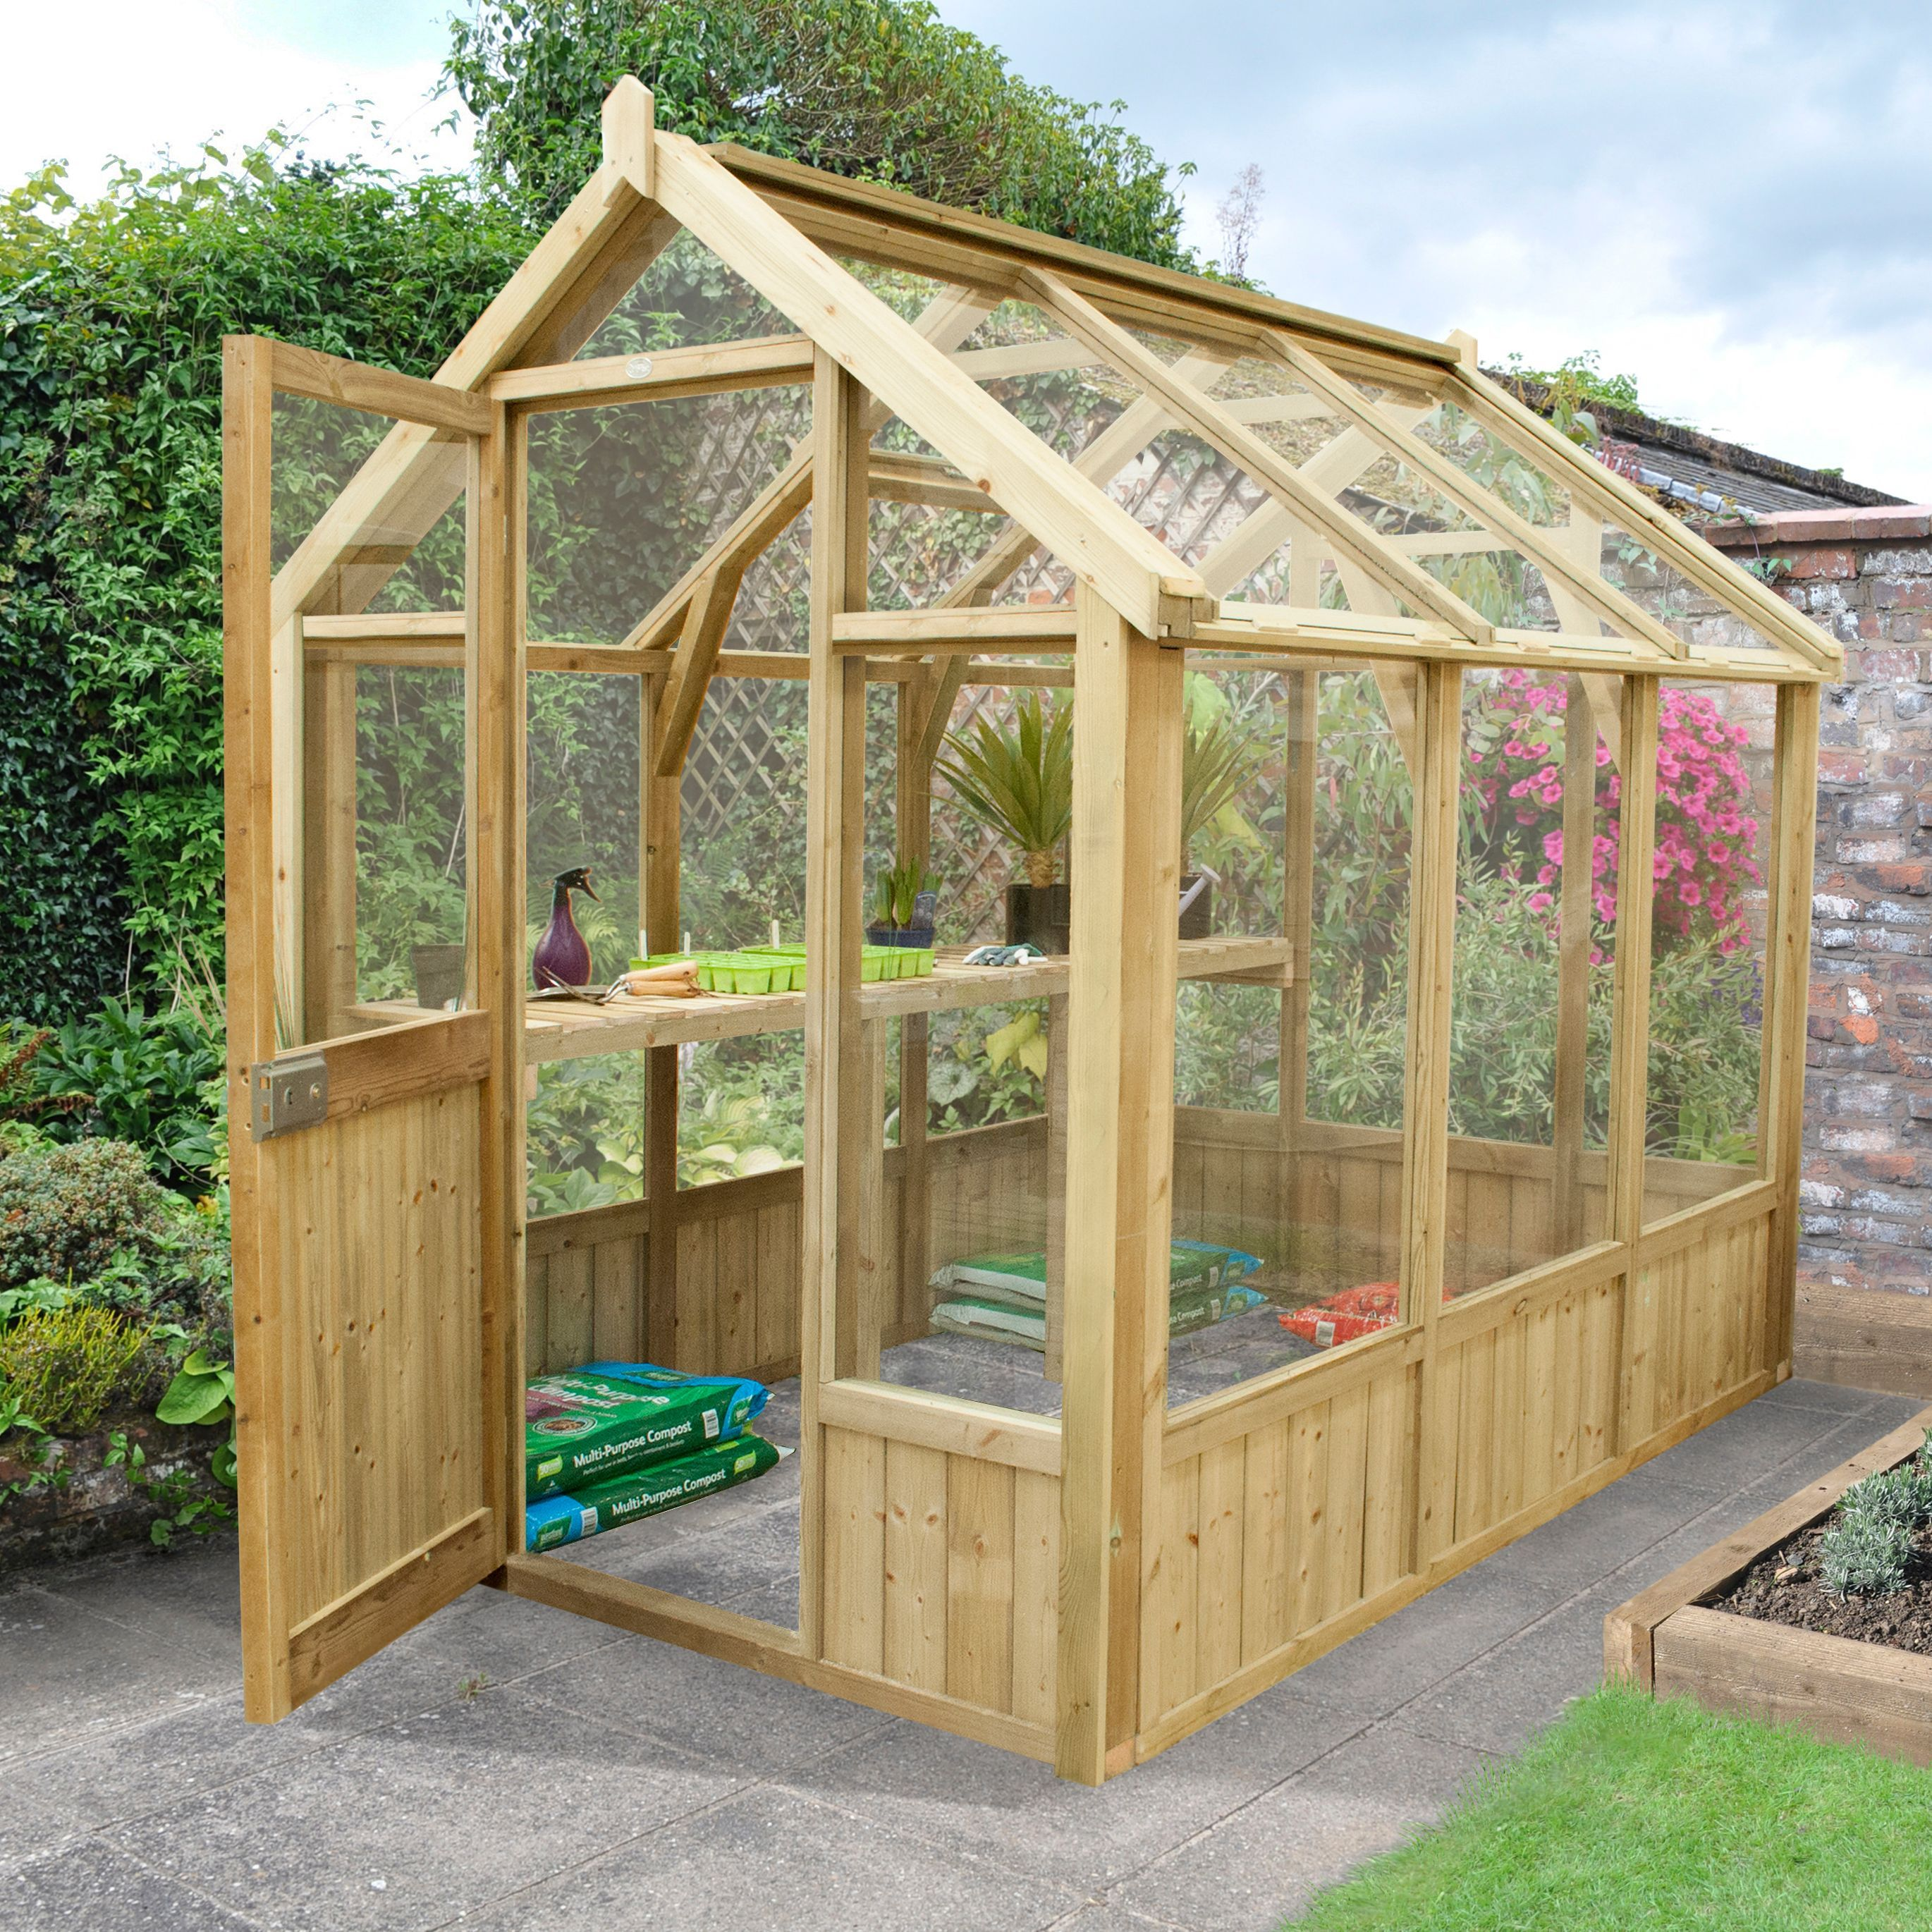 Image Result For Small Lean To Greenhouse Against Wooden